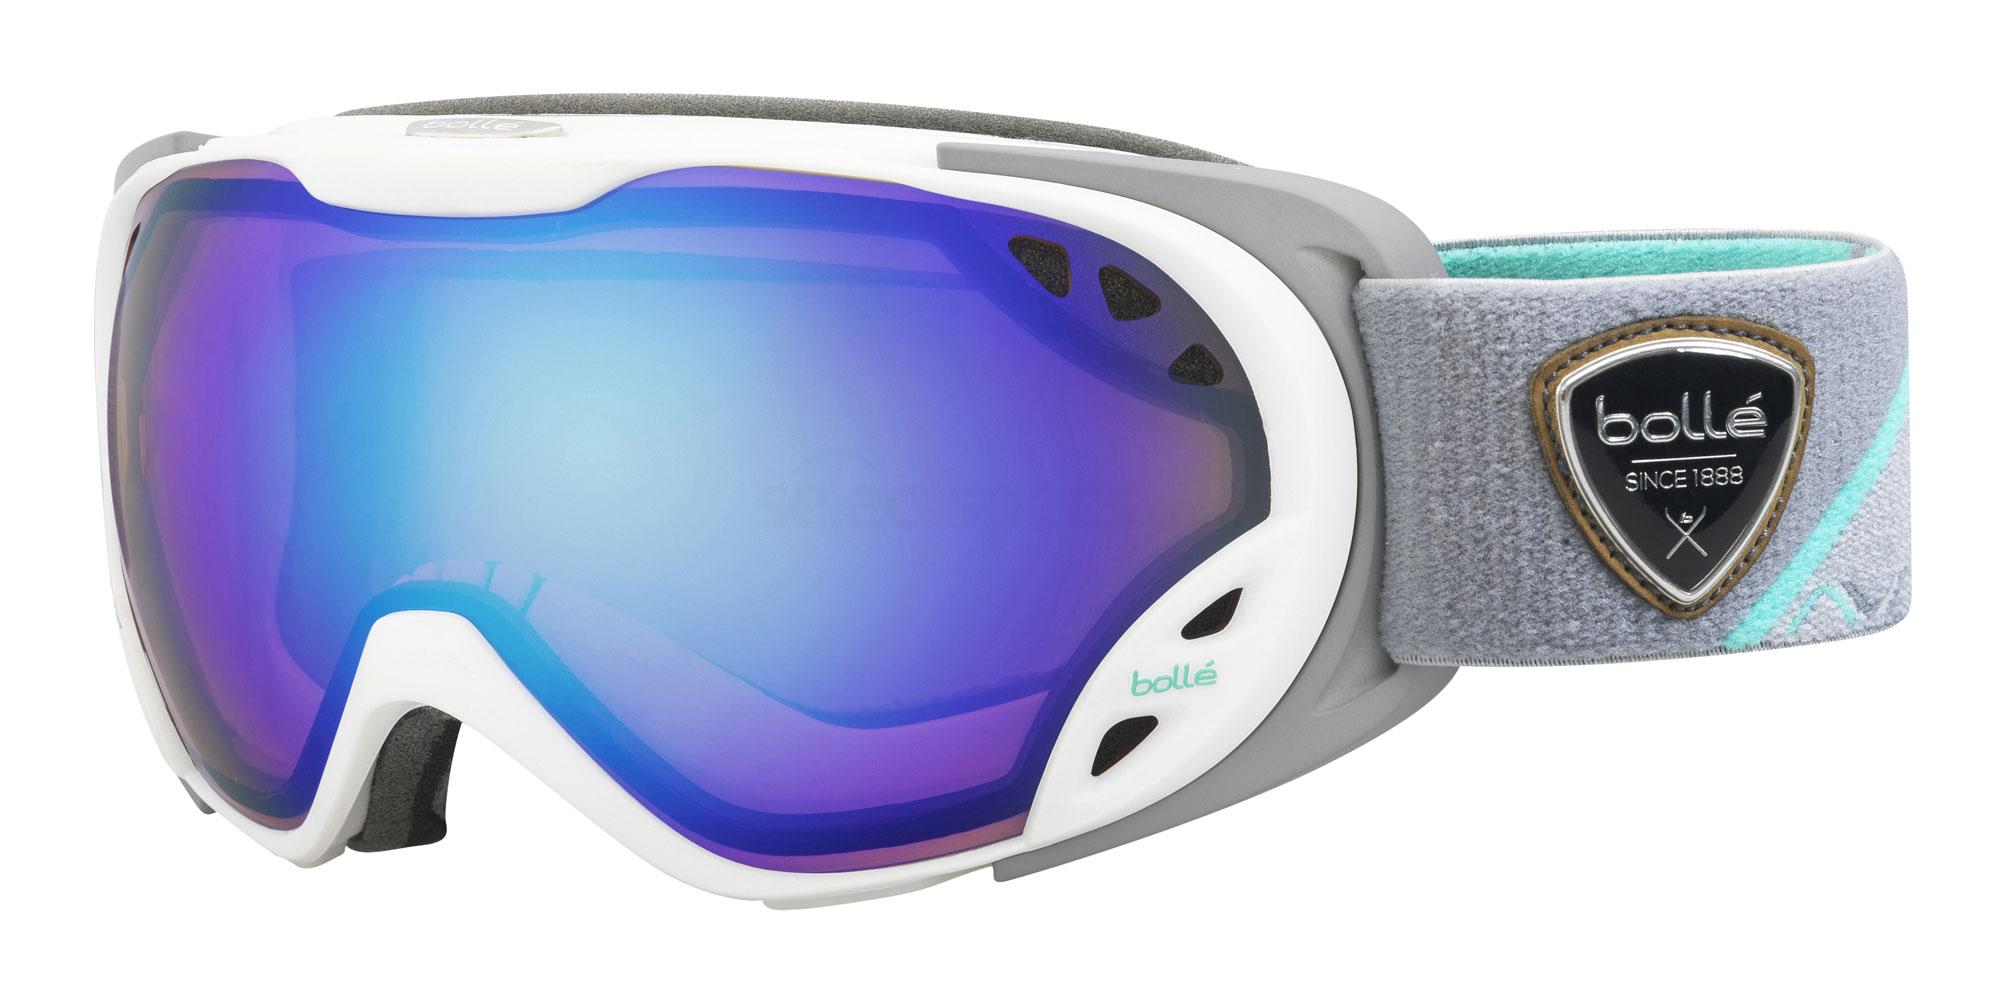 bolle duchess ski goggles in white grey and blue